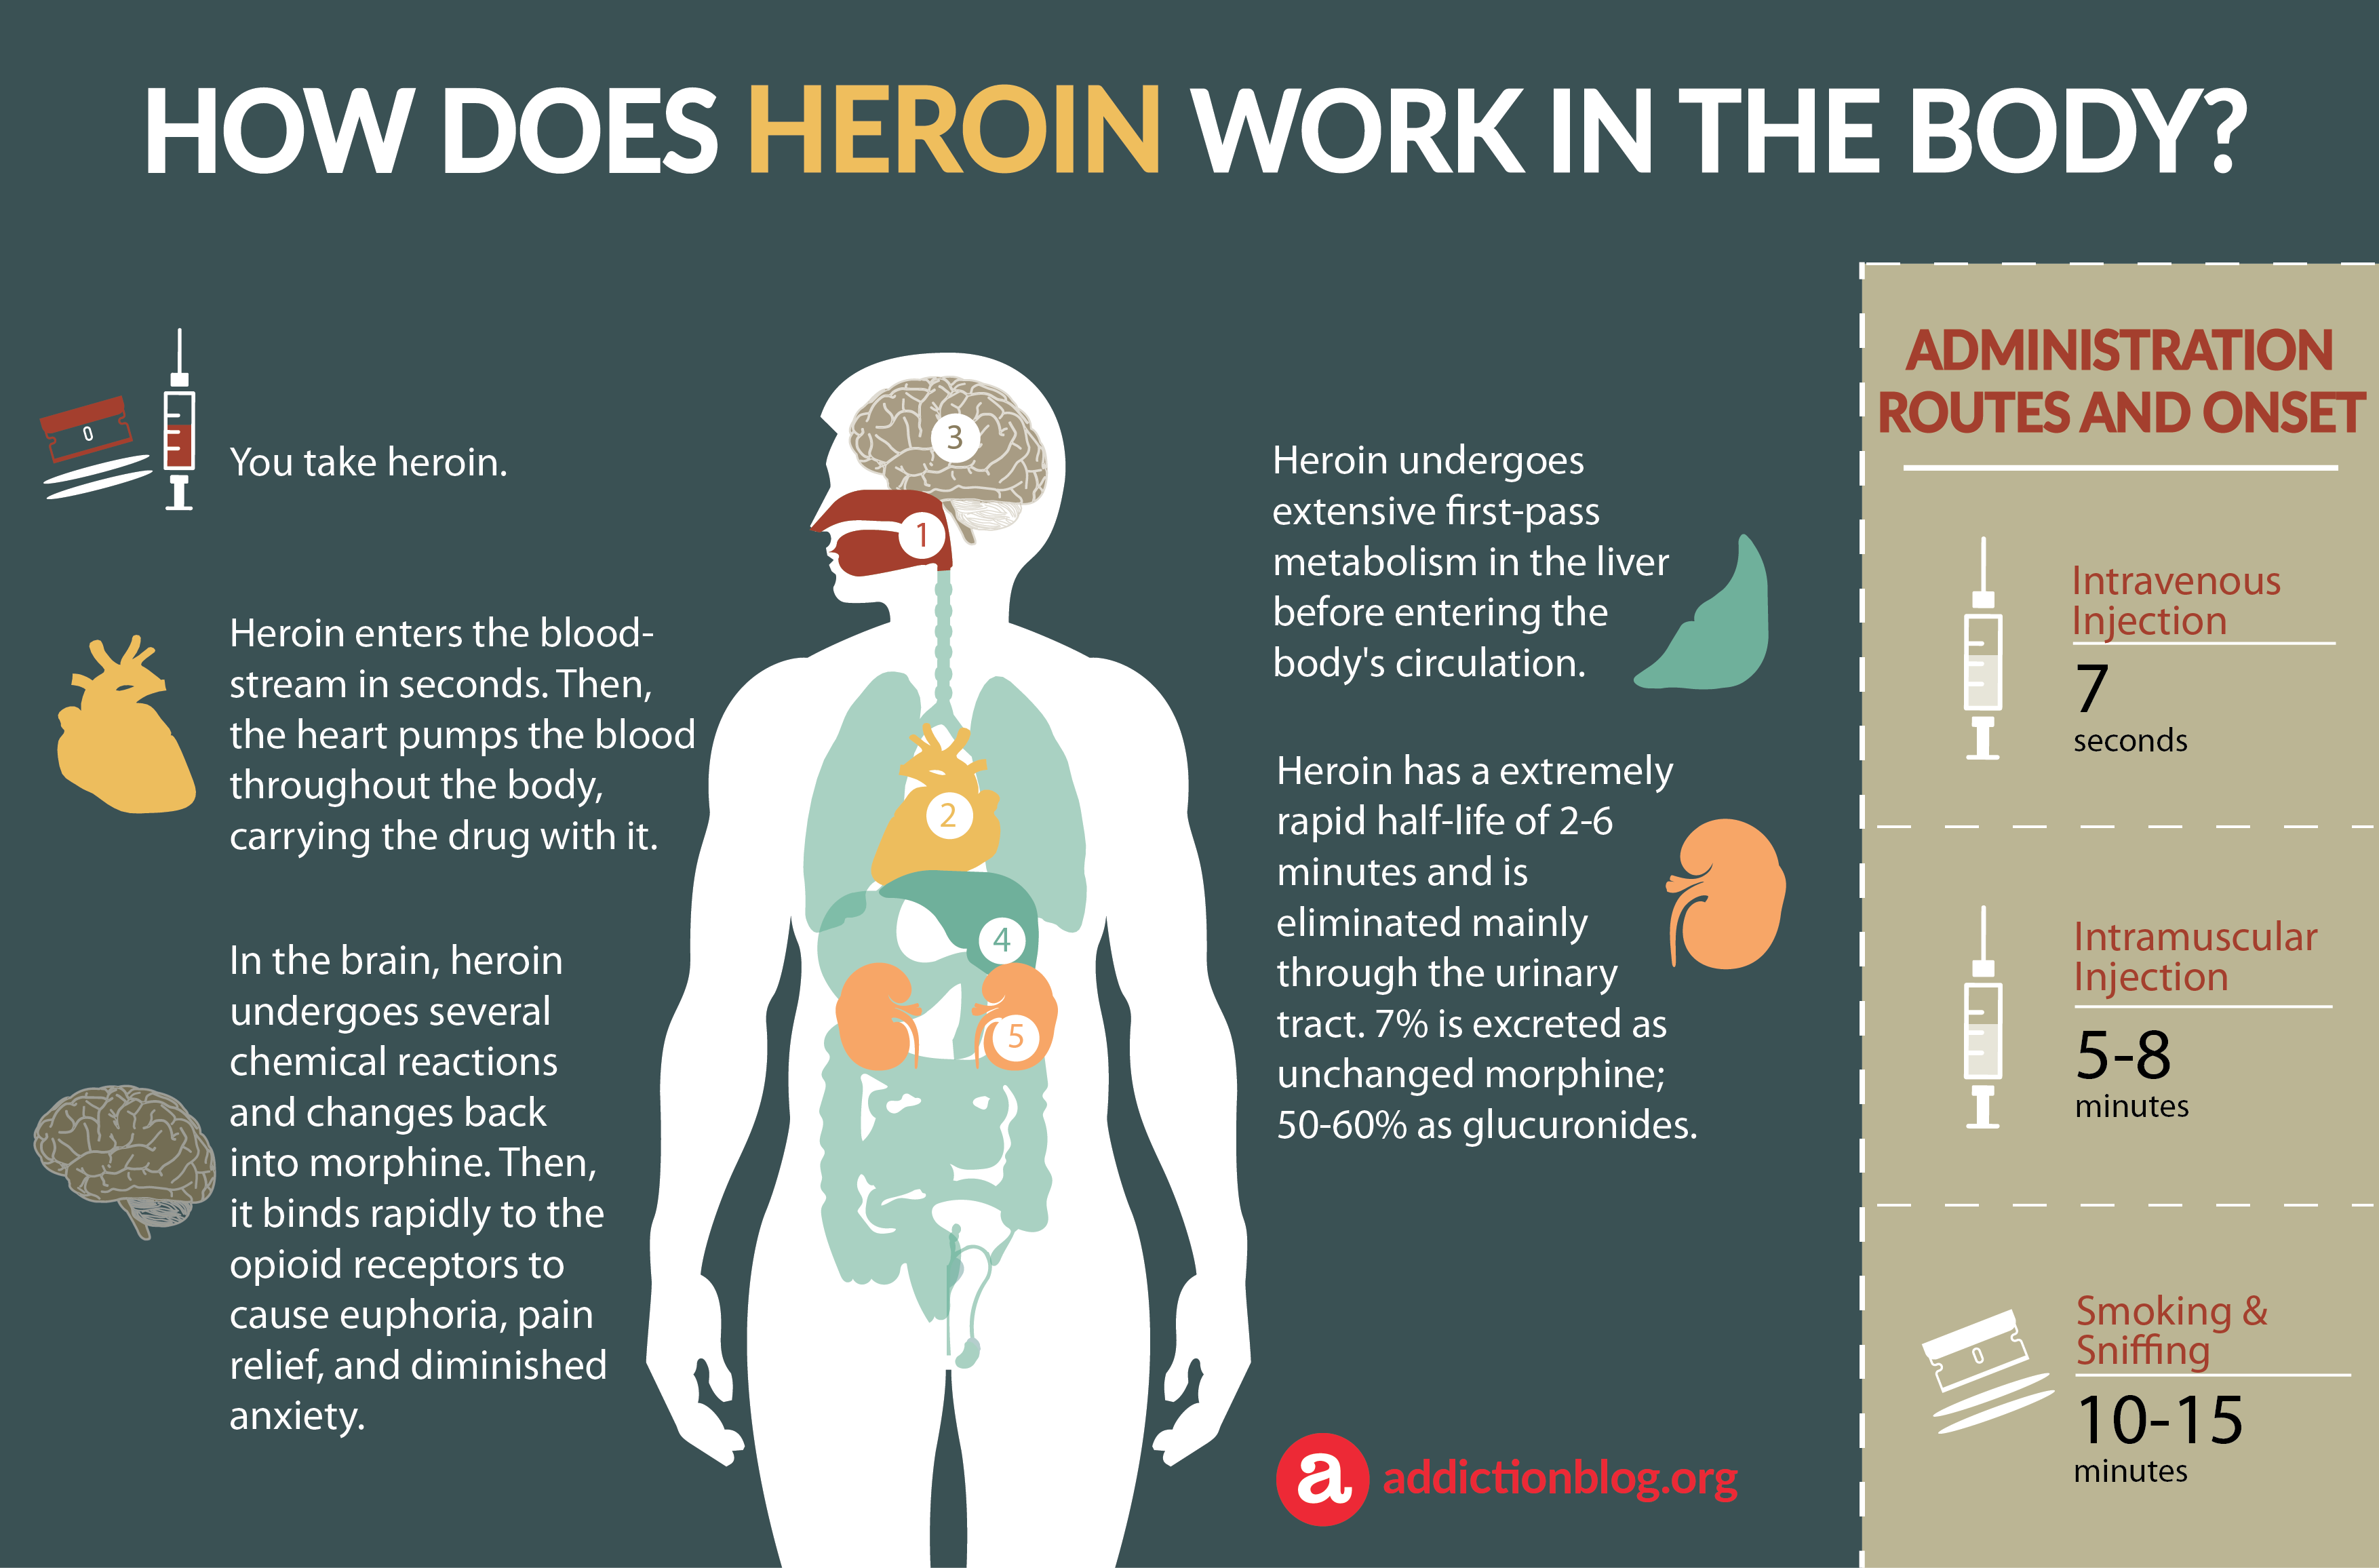 Heroin Metabolism in the Body: How Heroin Affects the Brain (INFOGRAPHIC)